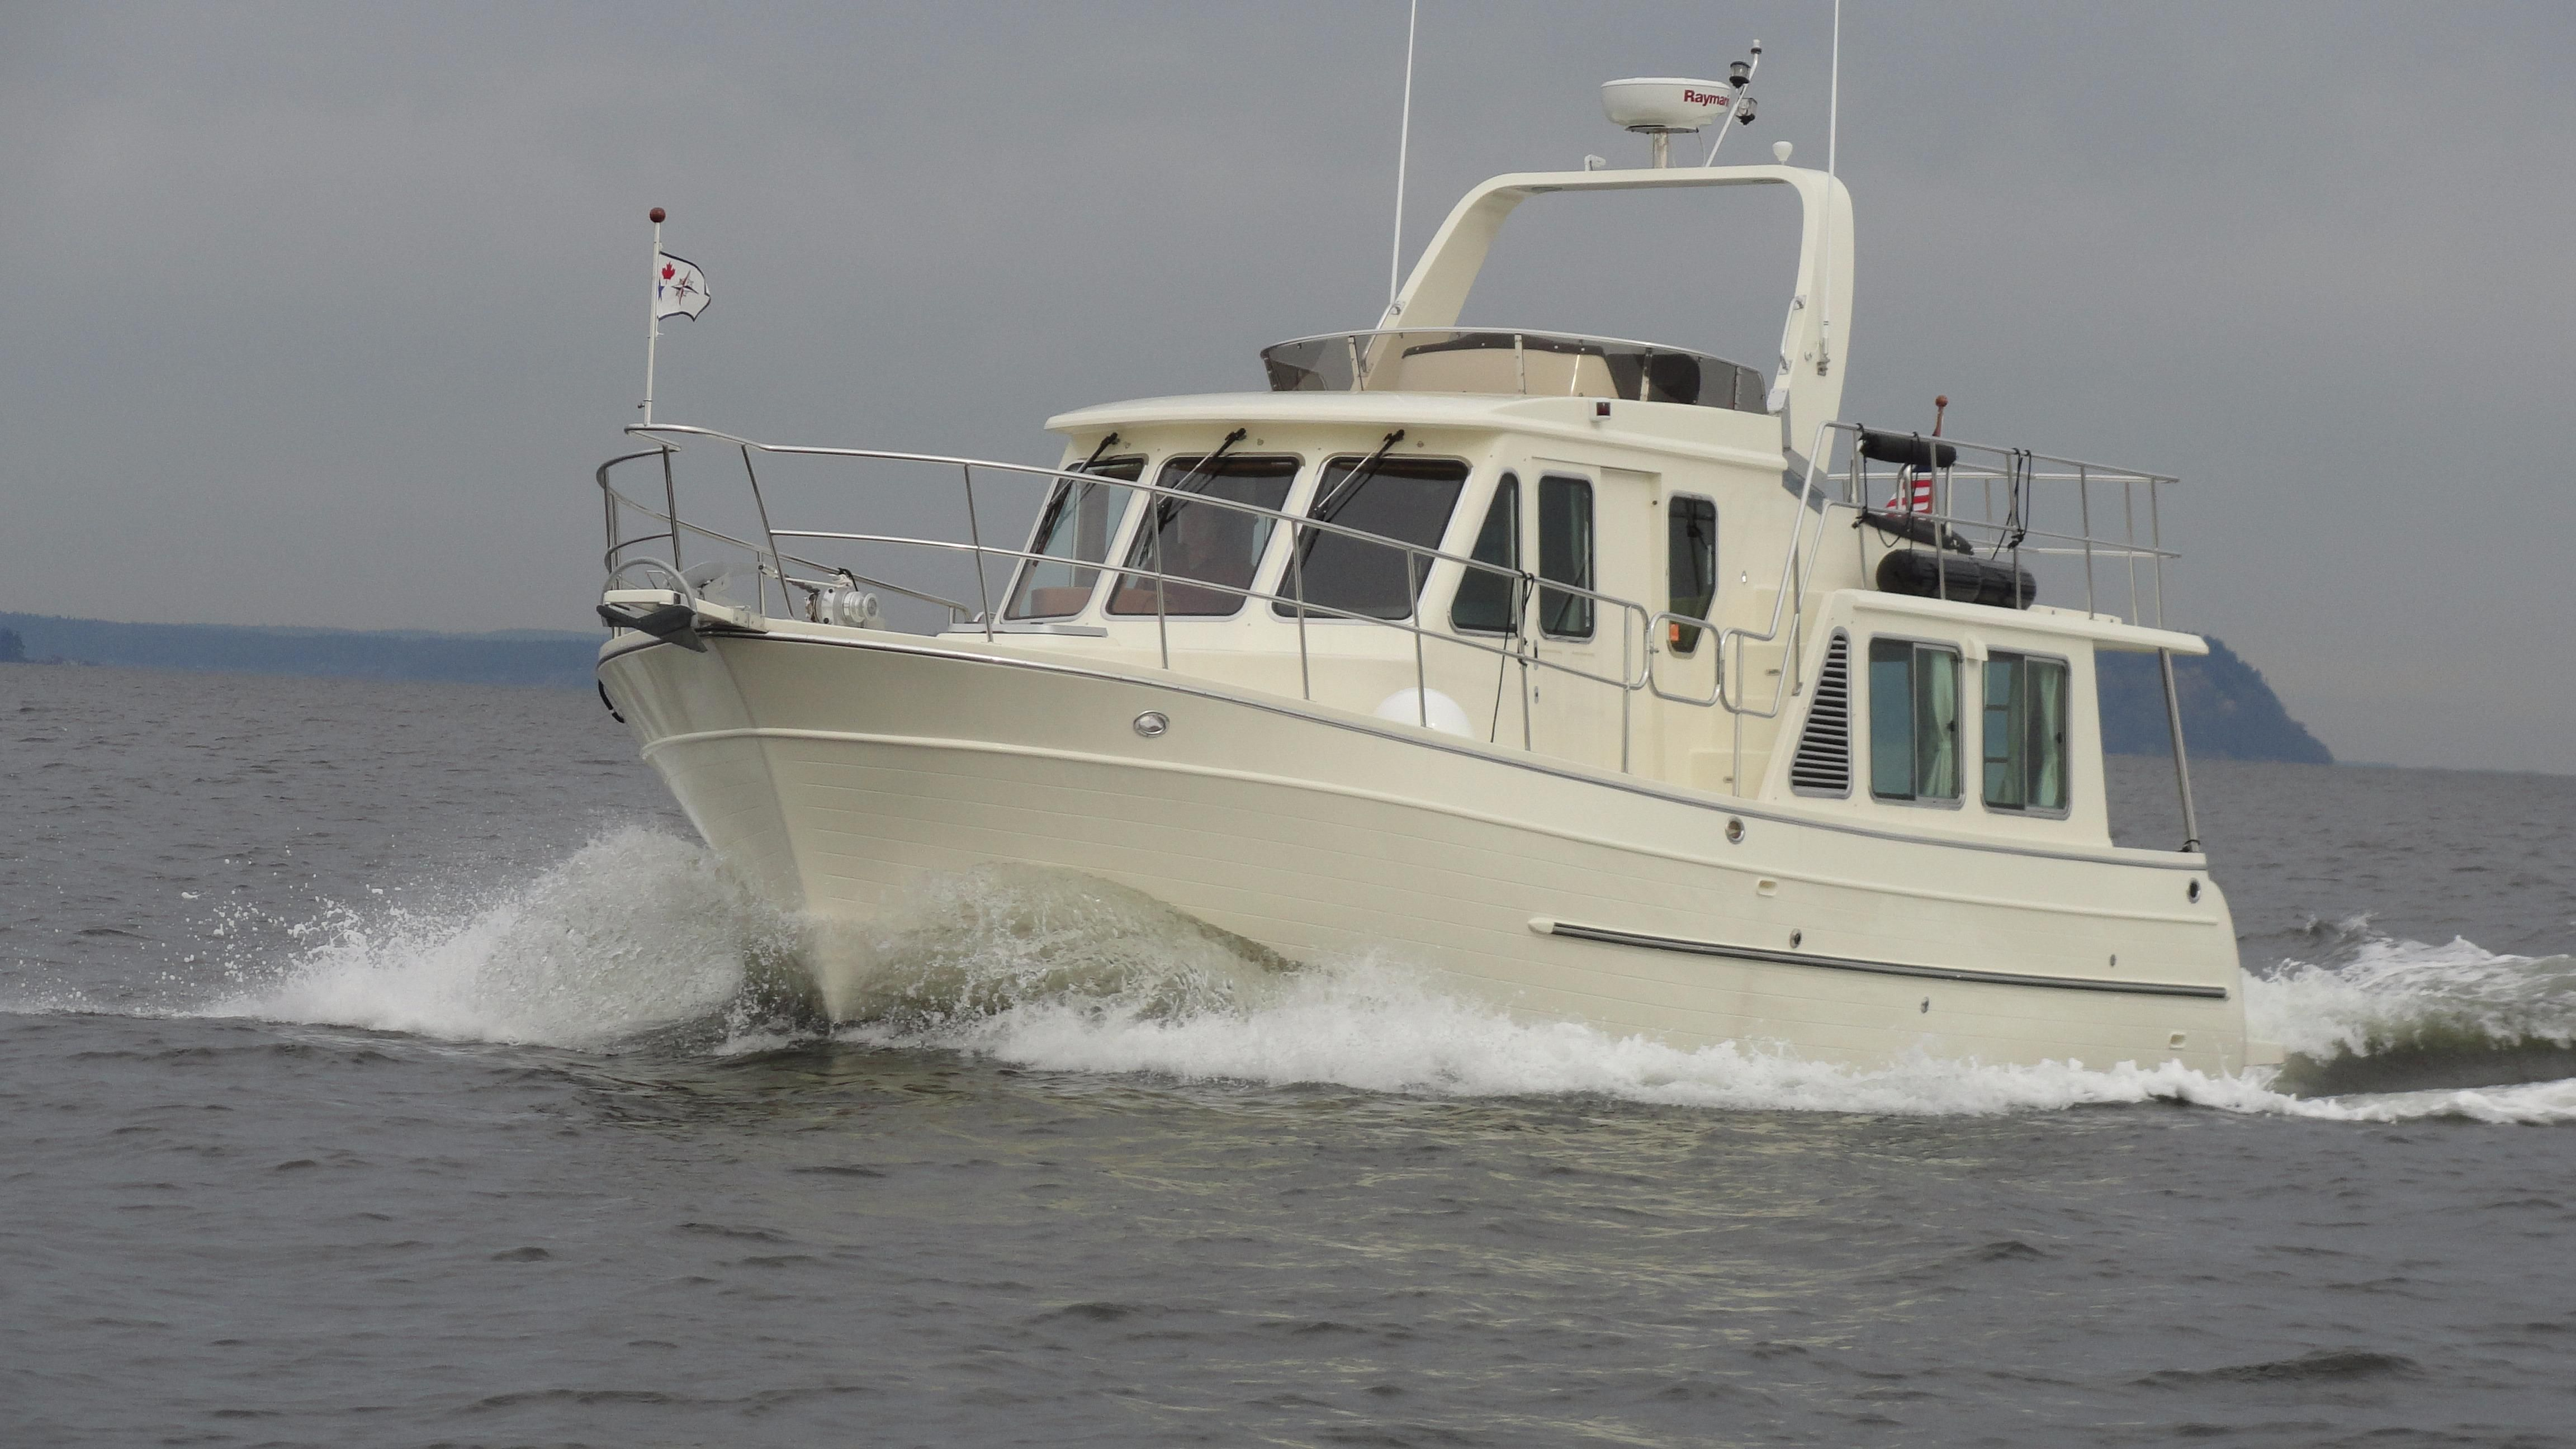 How To Calculate Miles Per Gallon >> 2014 North Pacific 39 Pilothouse Power Boat For Sale - www ...